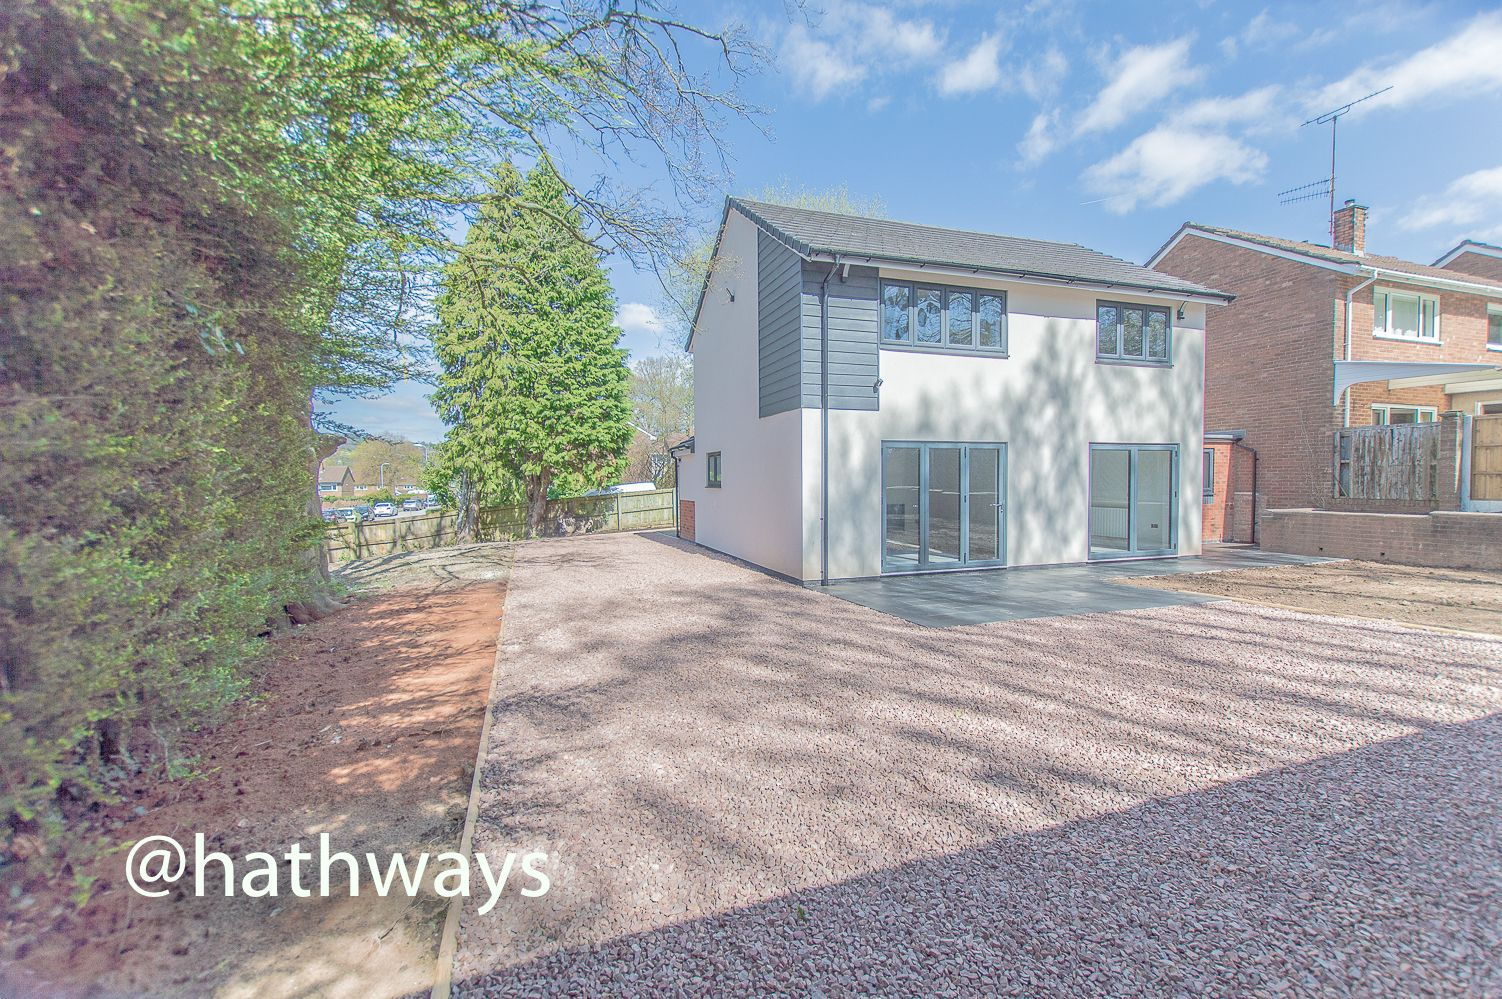 3 bed house for sale in Garw Wood Drive 2